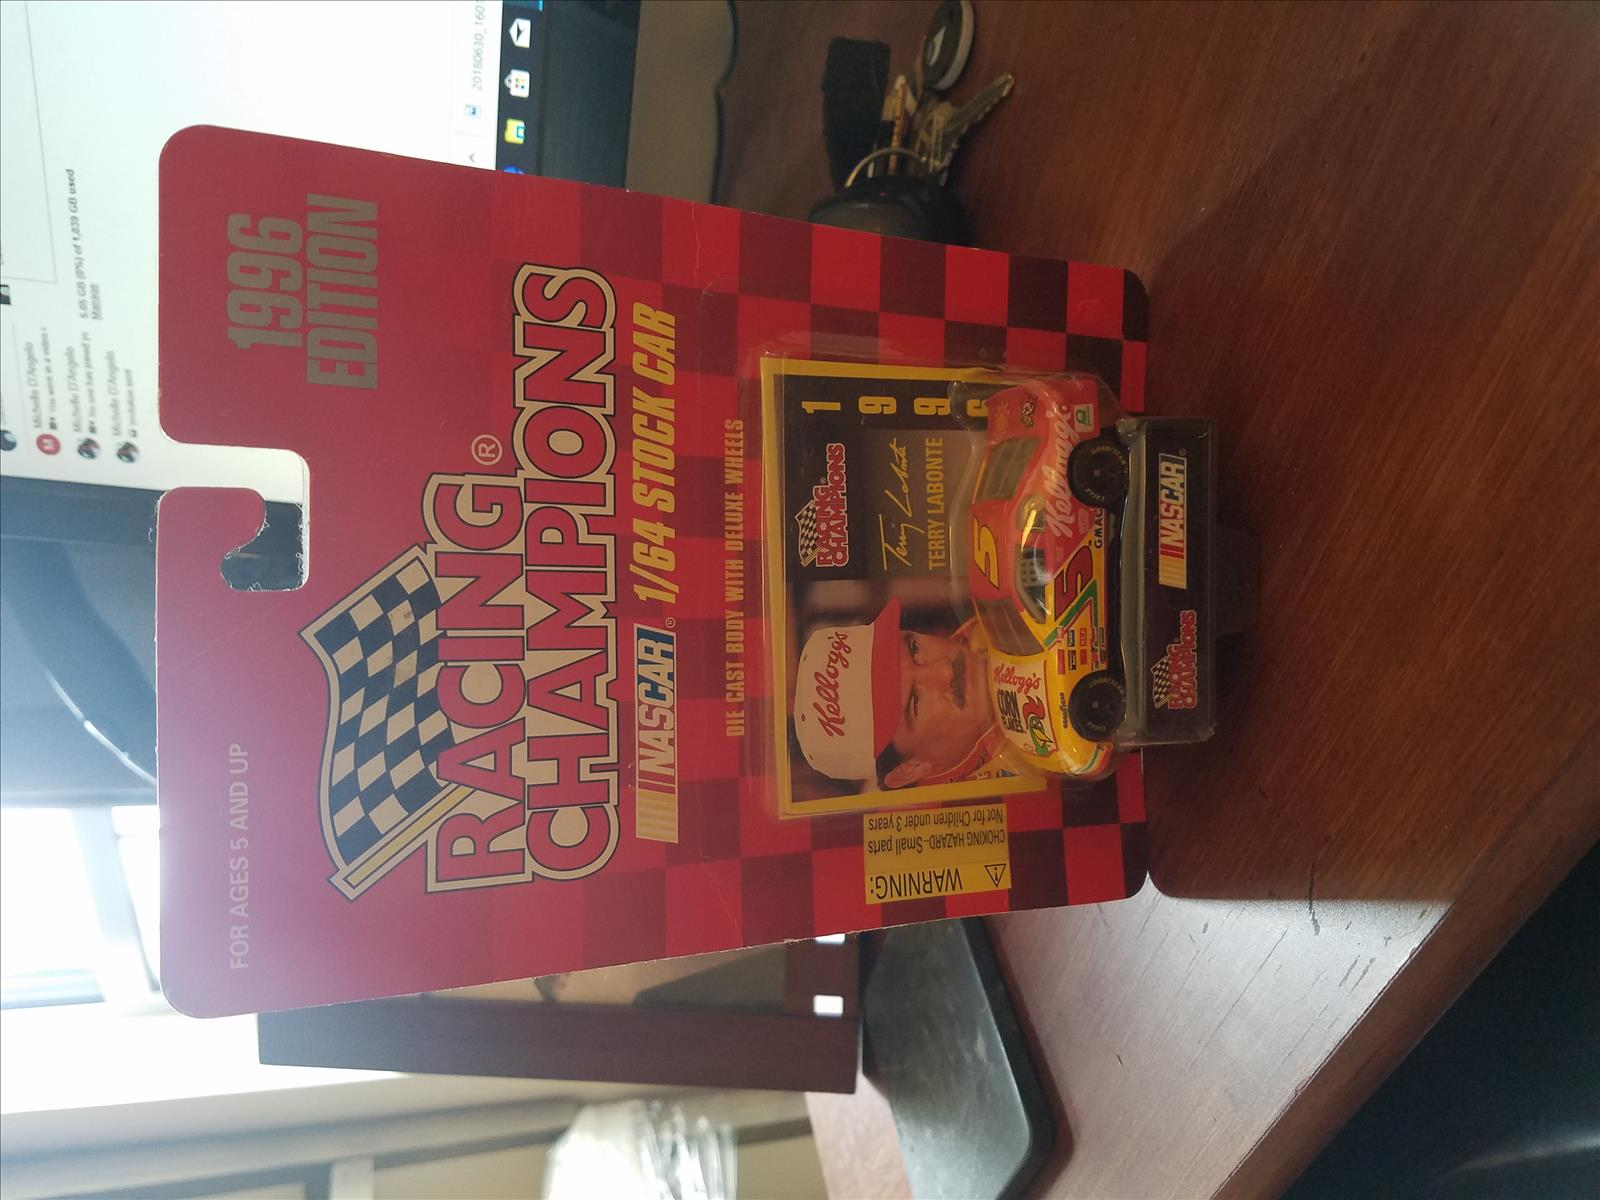 1996 Terry Labonte NASCAR Diecast 5 Kelloggs Corn Flakes CWC 1:64 Racing Champions 1996 Edition 1